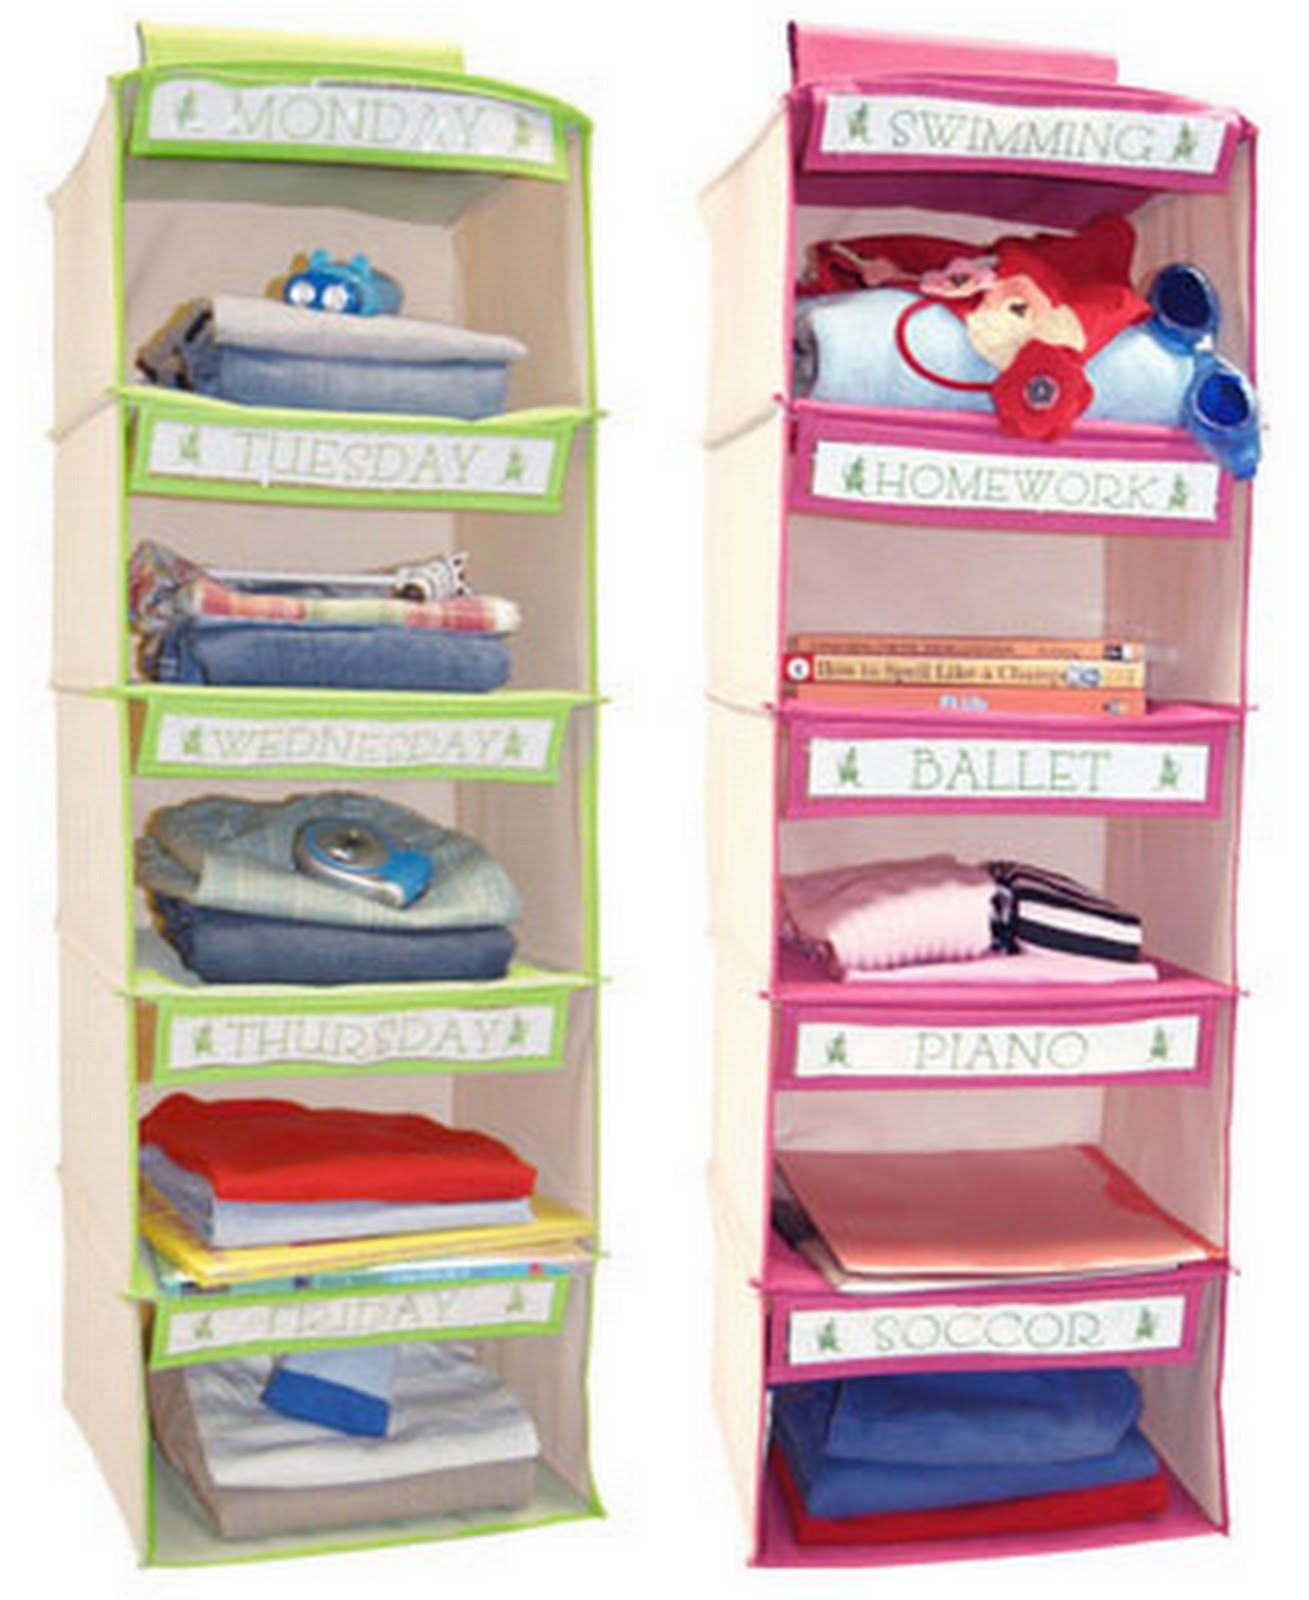 Clothes organizer I have a skinnier longer organizer that I use to